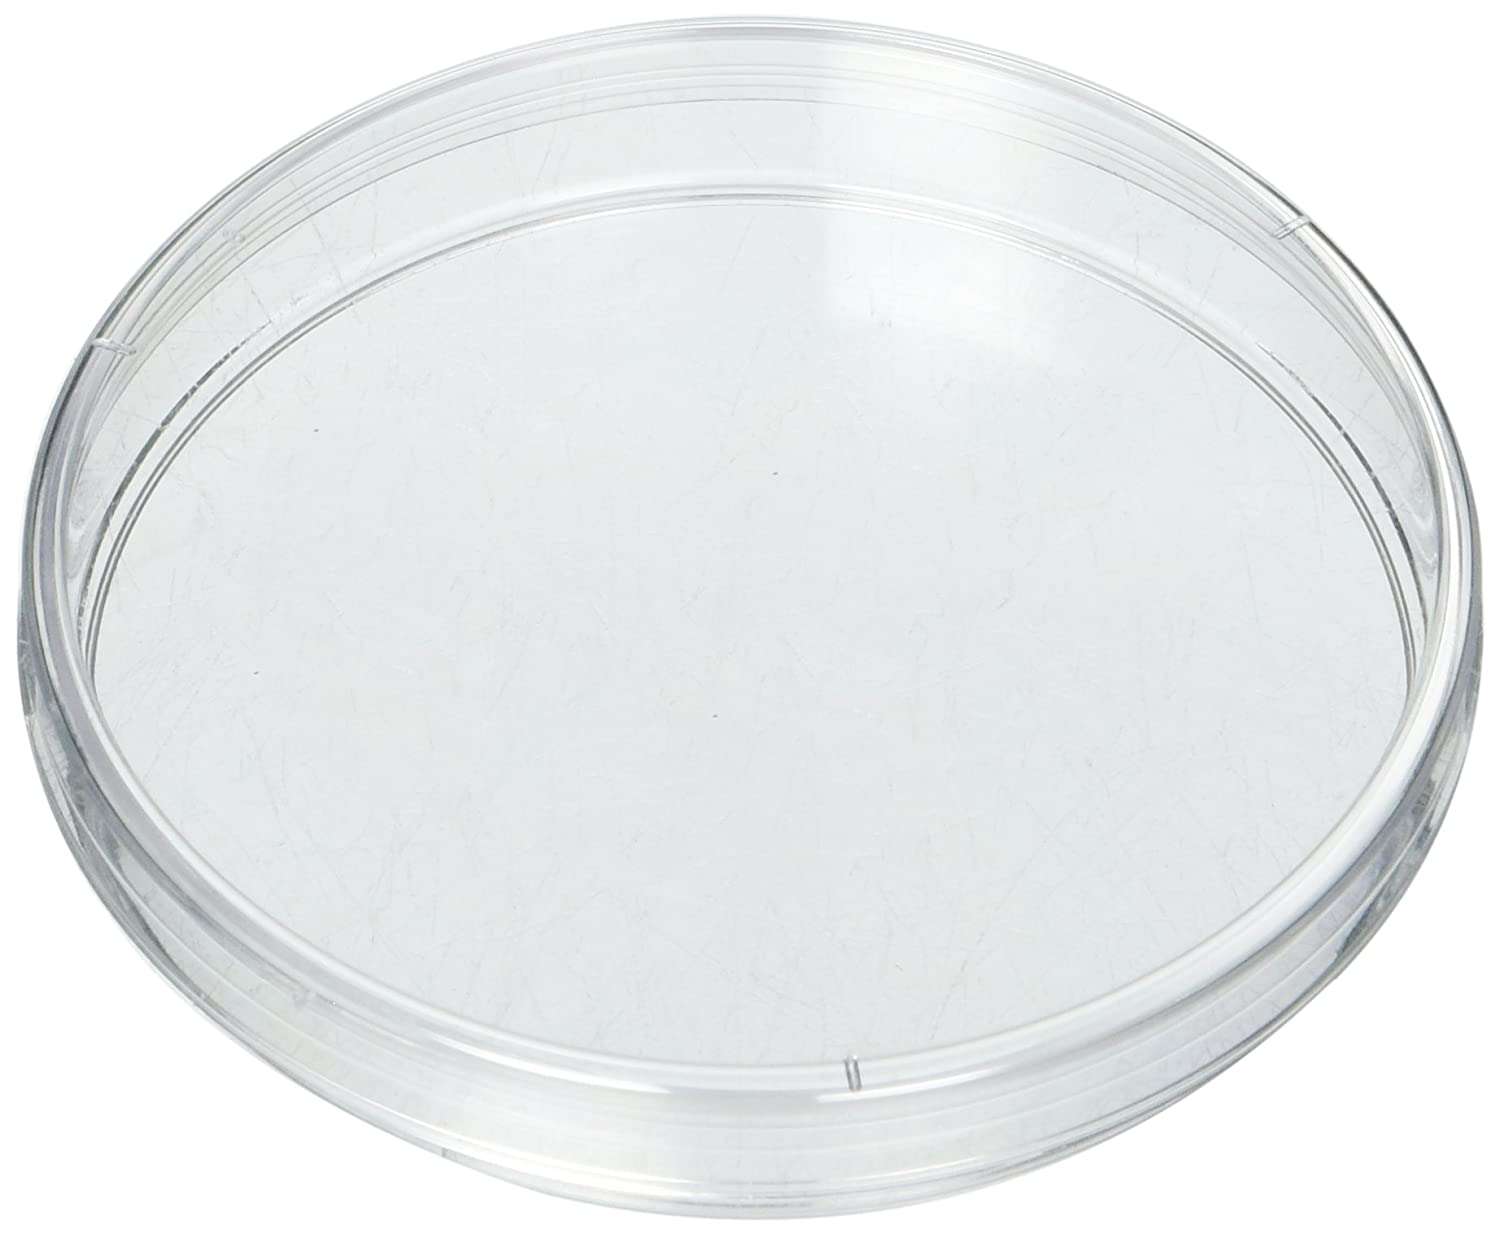 100mmx15mm Sterilized Petri Dishes with Lids,10 Pack HEAVY DUTY PETRI DISHES